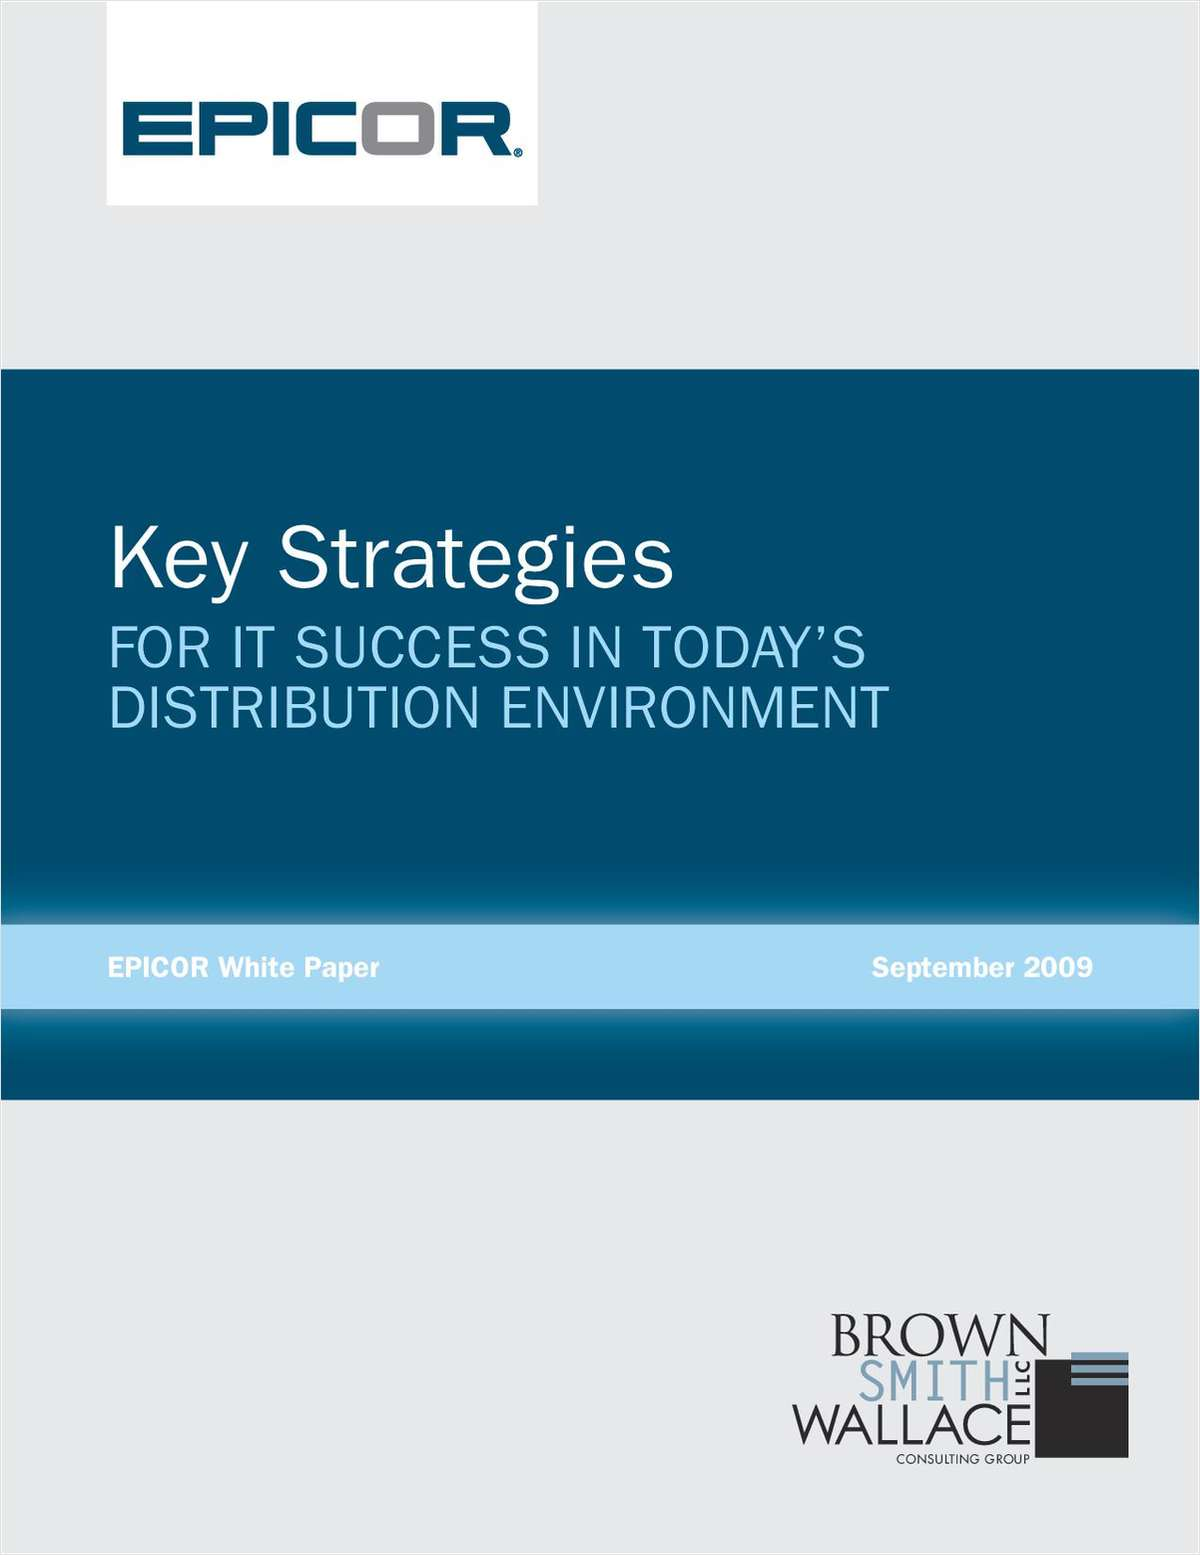 Key Strategies for IT Success in Today's Distribution Environment